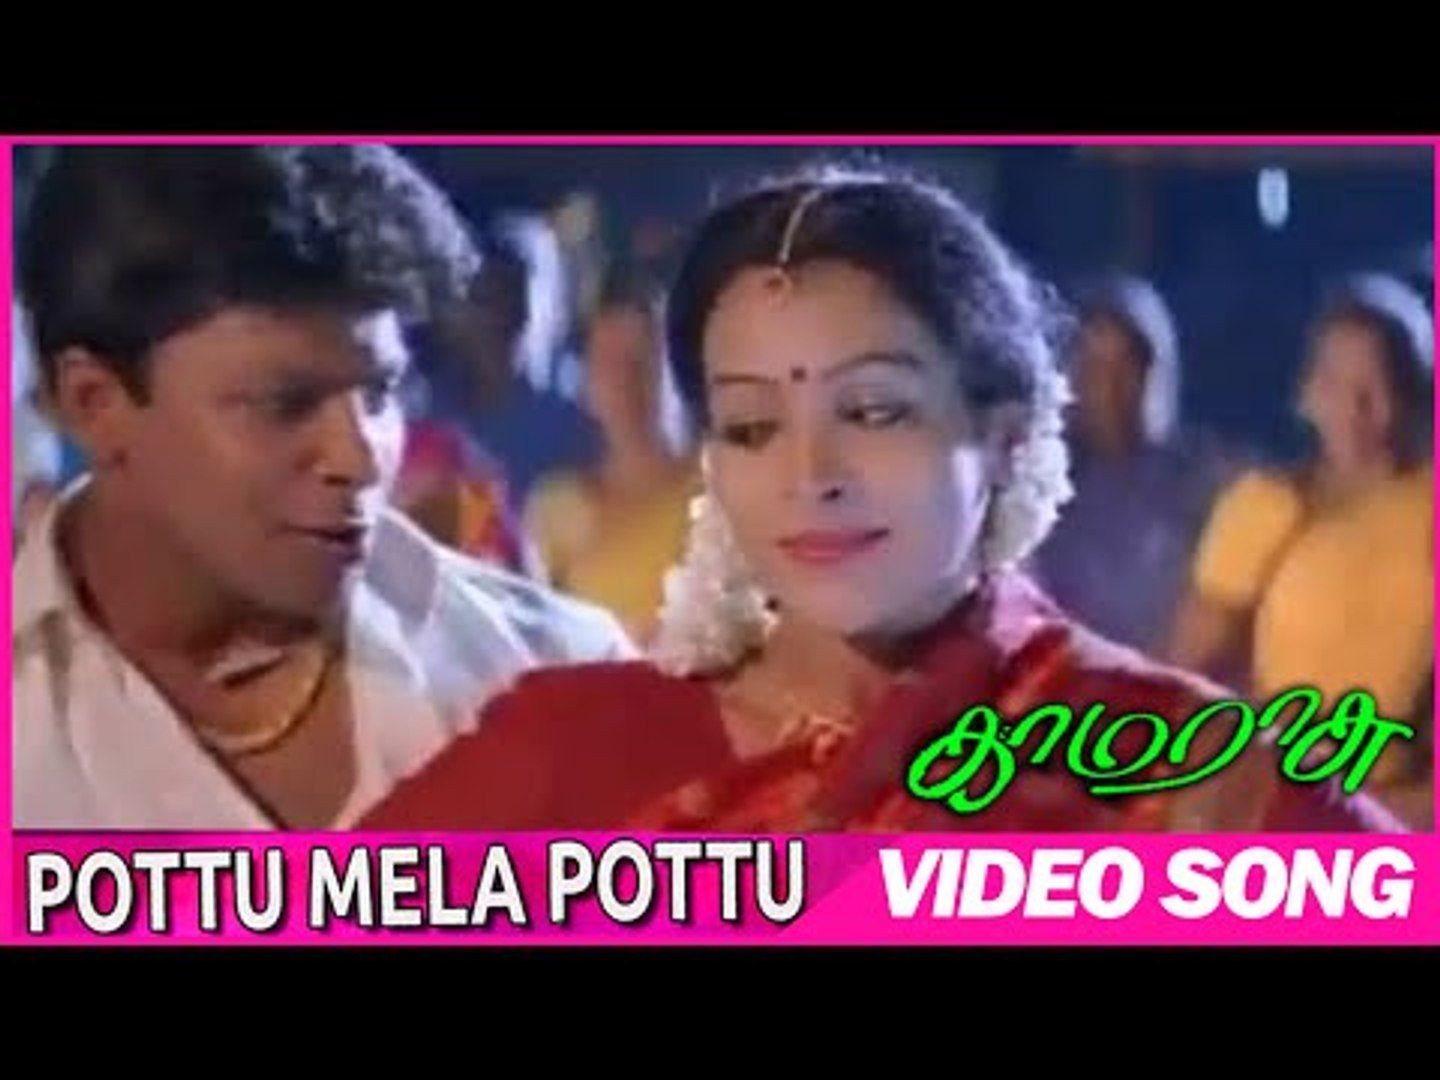 Tamil Songs | Pottu Mela Pottu Video Songs | Kamarasu | Sujatha Hits |  S.A.Rajkumar